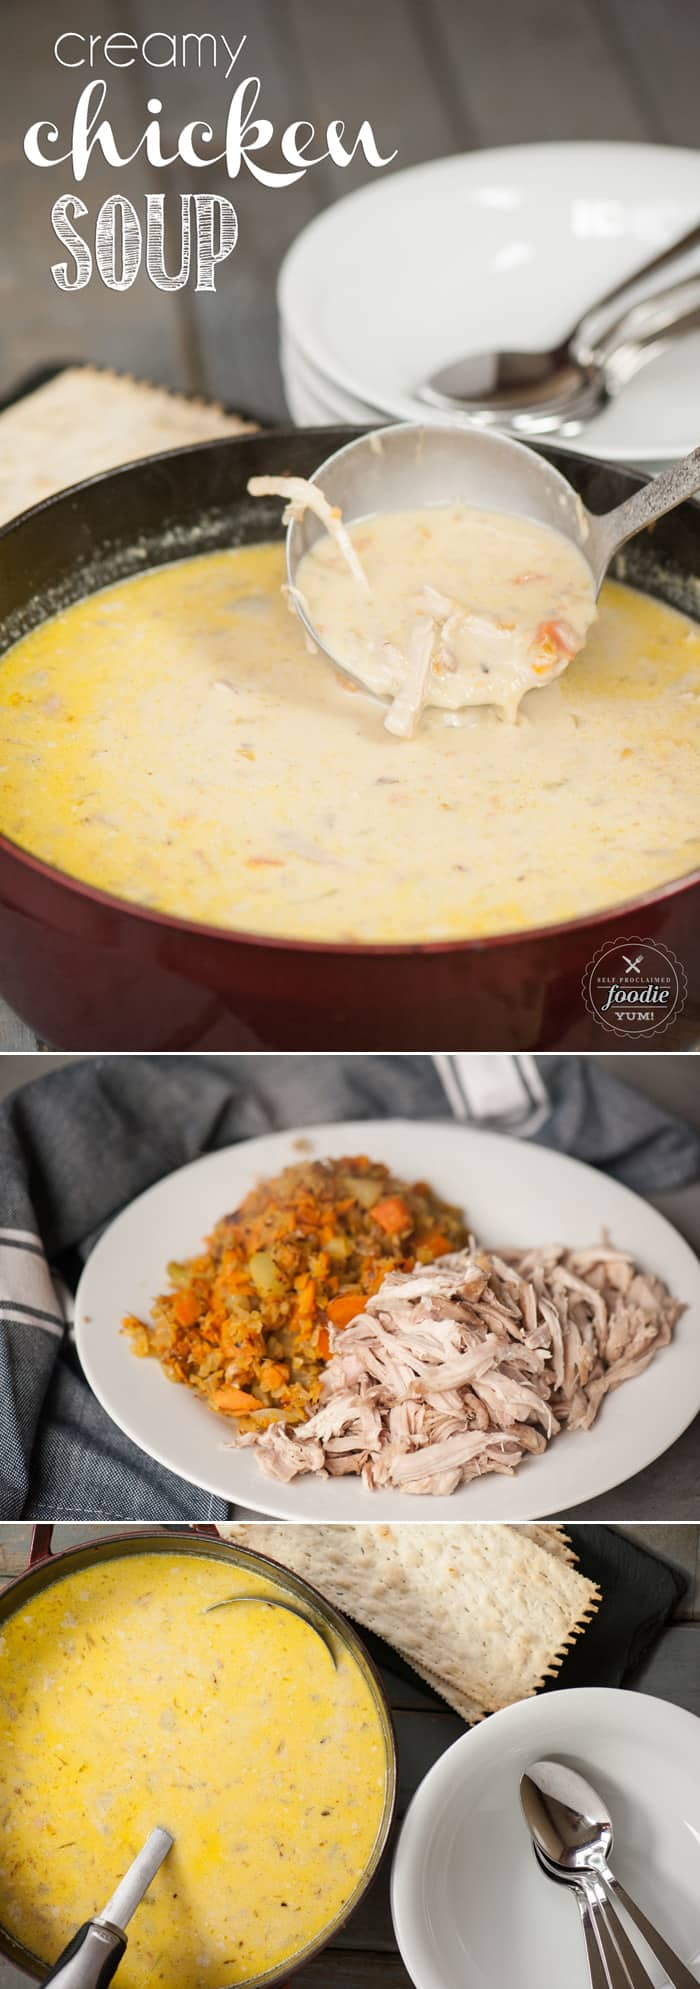 Creamy Chicken Soup is so rich, yet it is loaded with veggies and is an easy, healthy, simple chicken soup recipe your entire family will love for dinner.